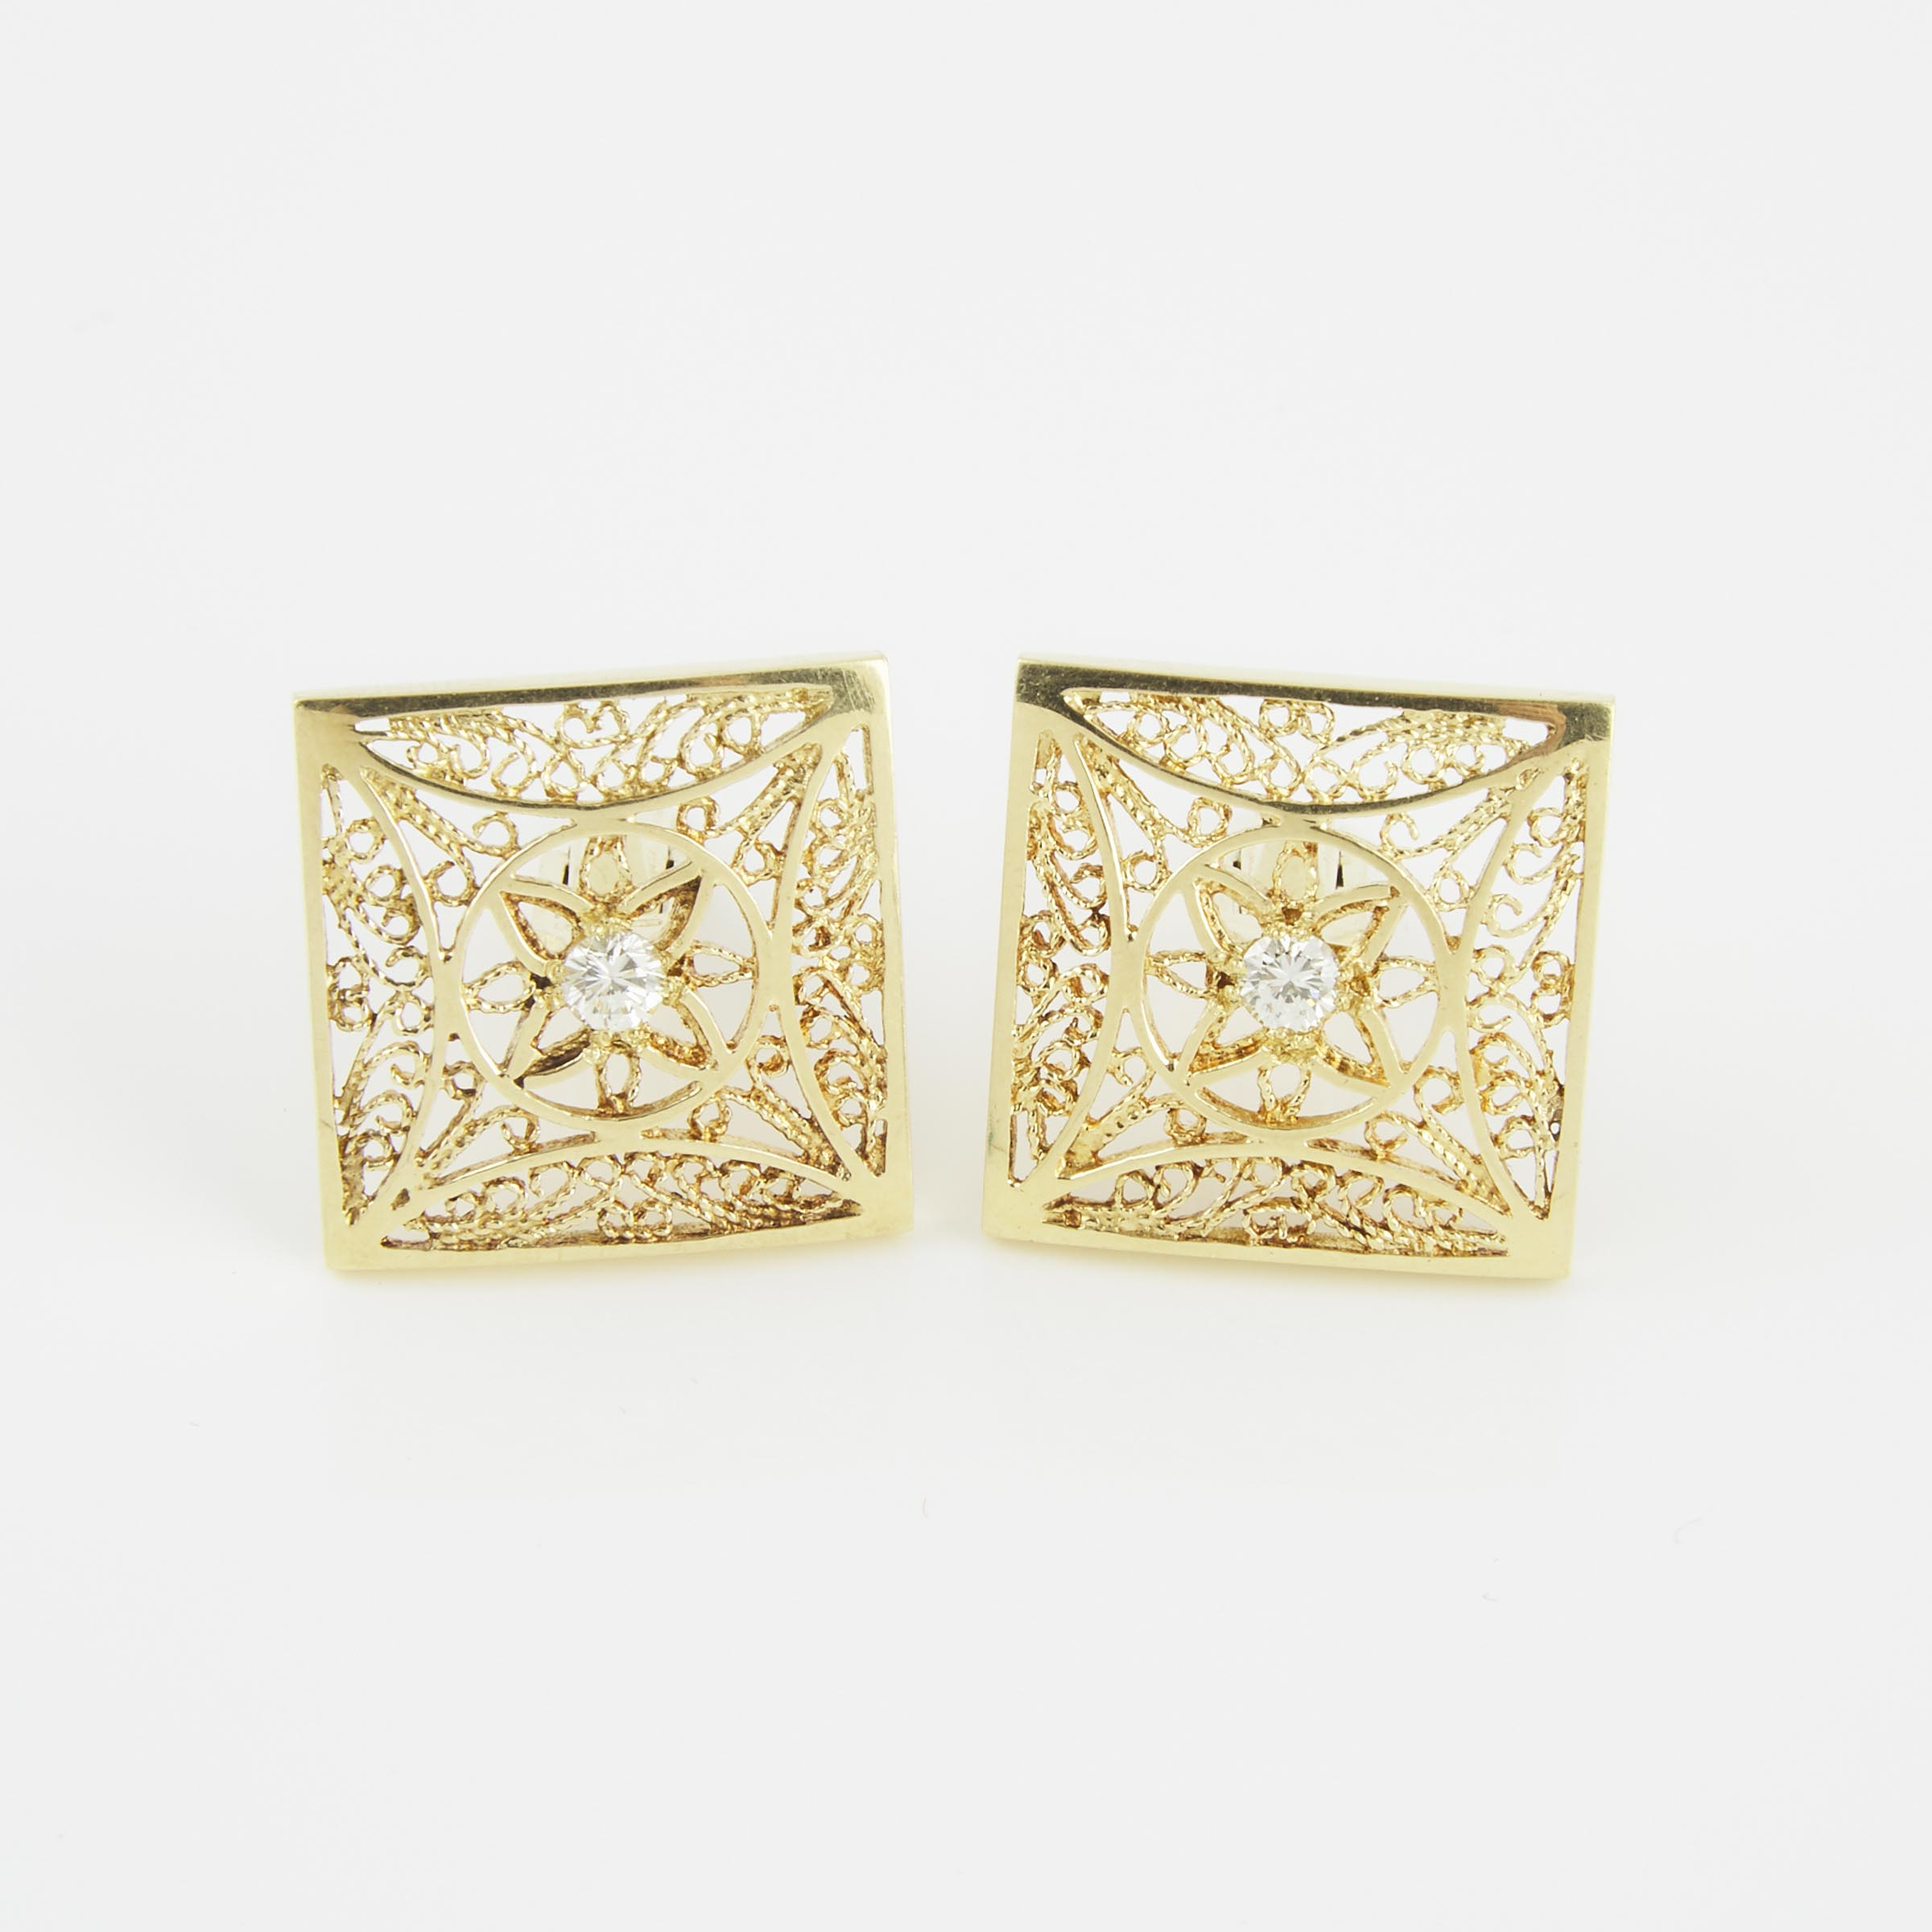 Pair Of Israeli 14k Yellow Gold Filigree Cufflinks